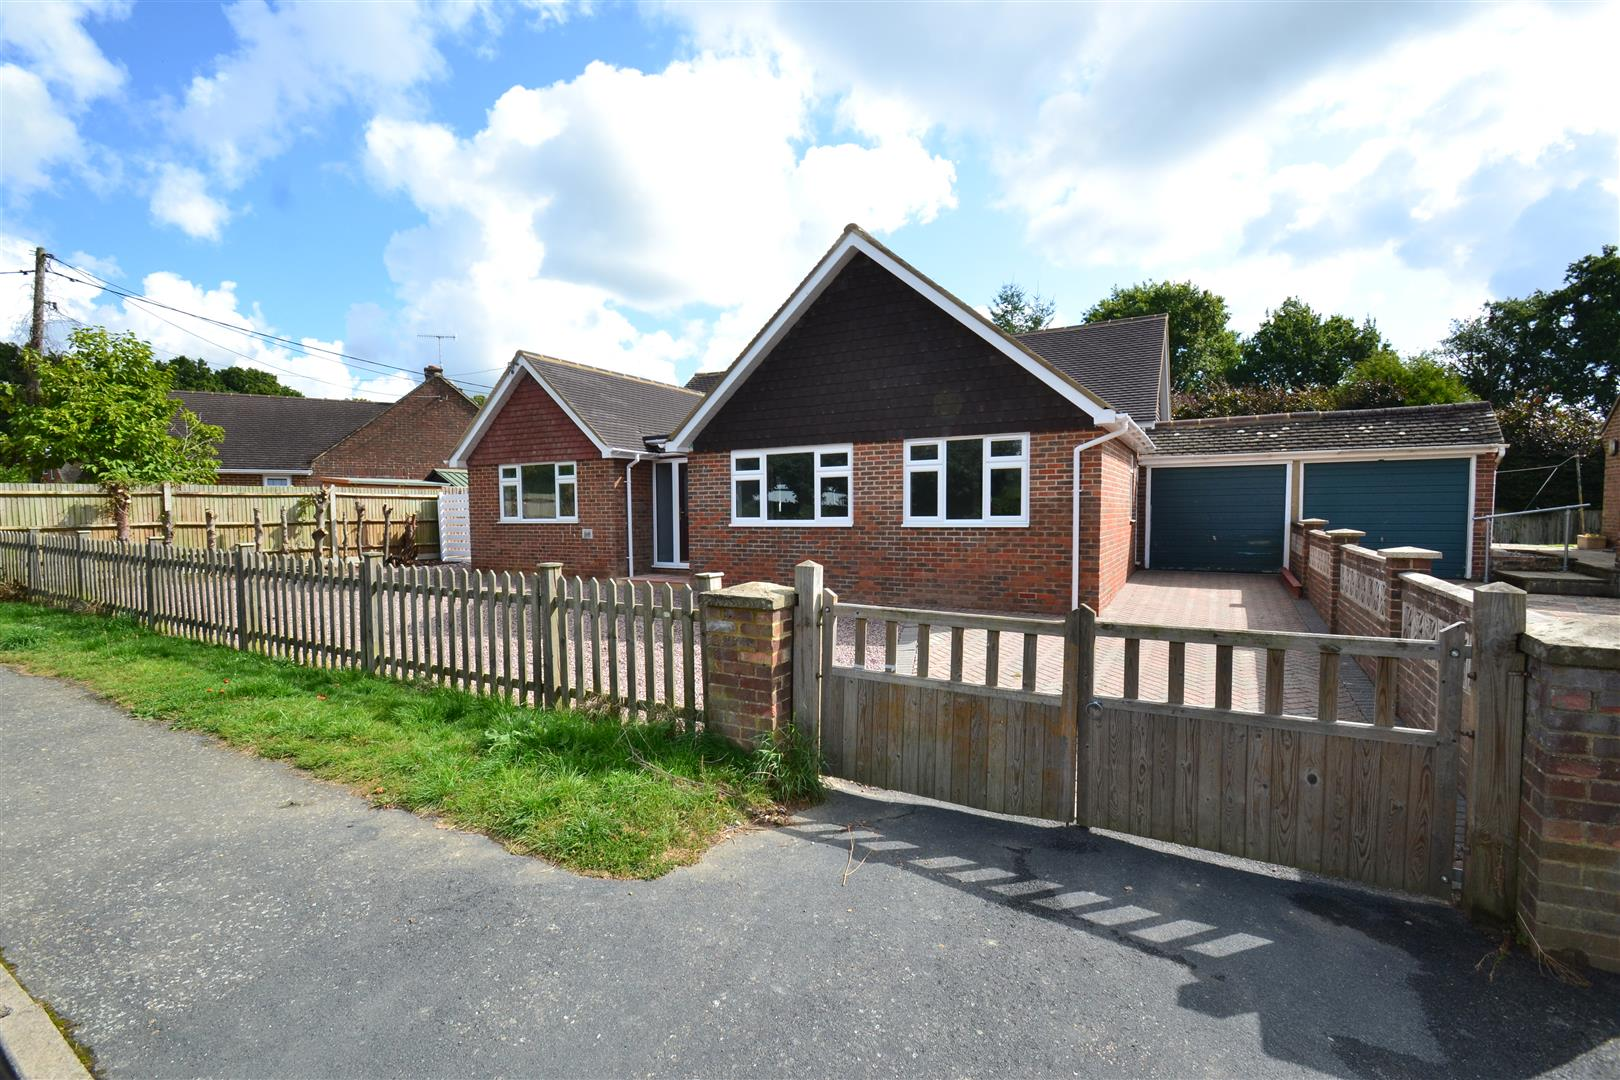 4 Bedrooms Detached Bungalow for sale in Park Road, Smallfield